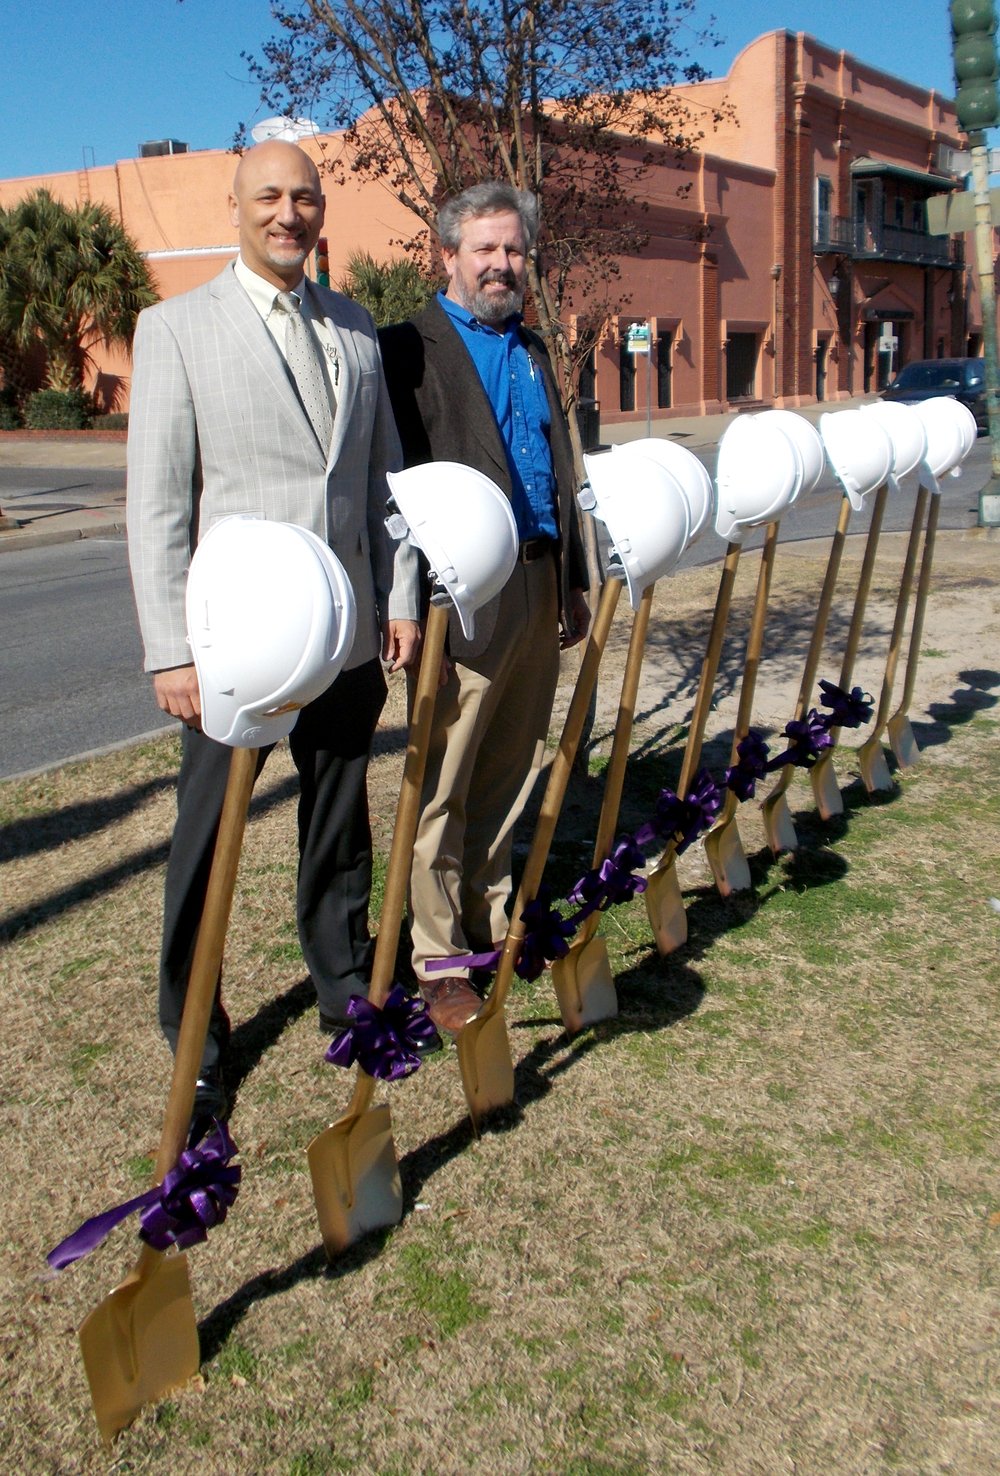 Infinity Engineering Consultants' Principal Raoul V. Chauvin, III, left, and Civil Engineer Michael Riviere stand before the ceremonial shovel at the Rampart Streetcar Line ground breaking ceremony on January 28, 2015.